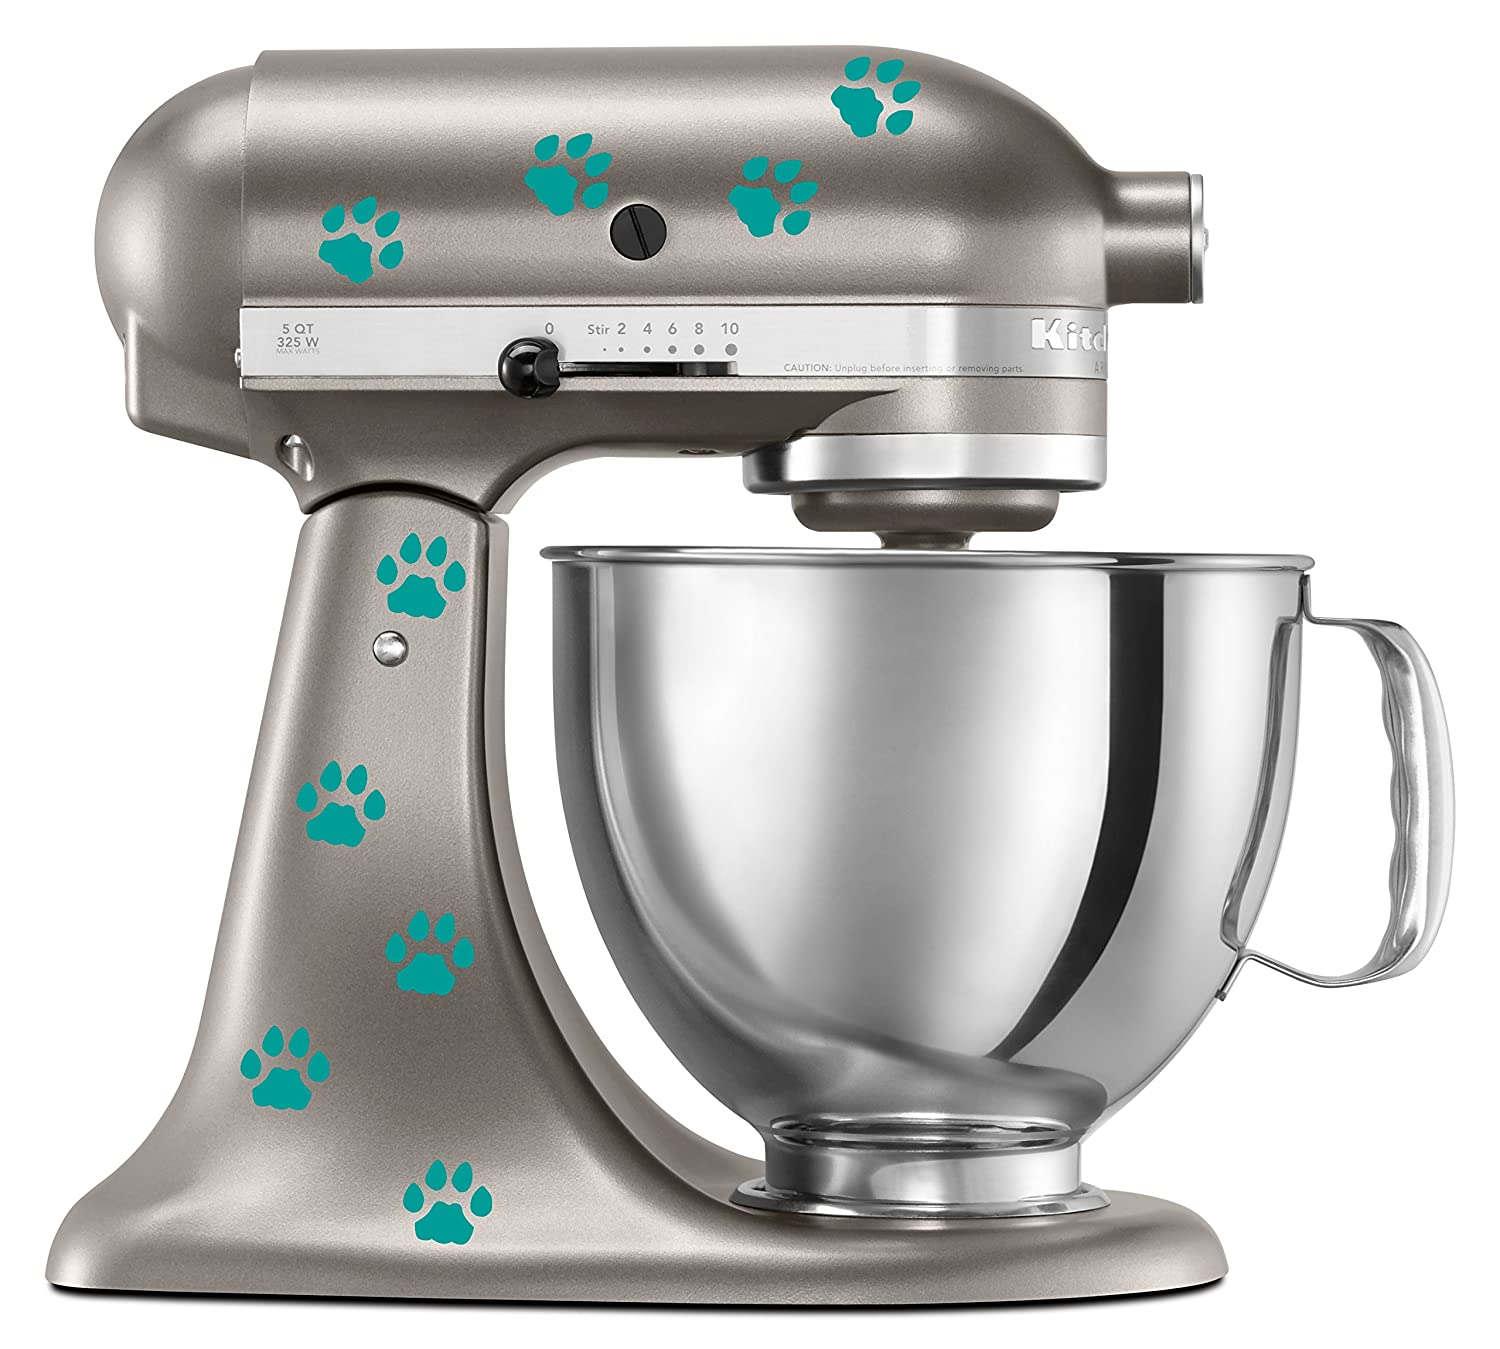 Cat Paw Prints Decal In Turquoise for KitchenAid Mixer - Classic Cool Artistic - also for MacBook, Laptop, Car, or Anything